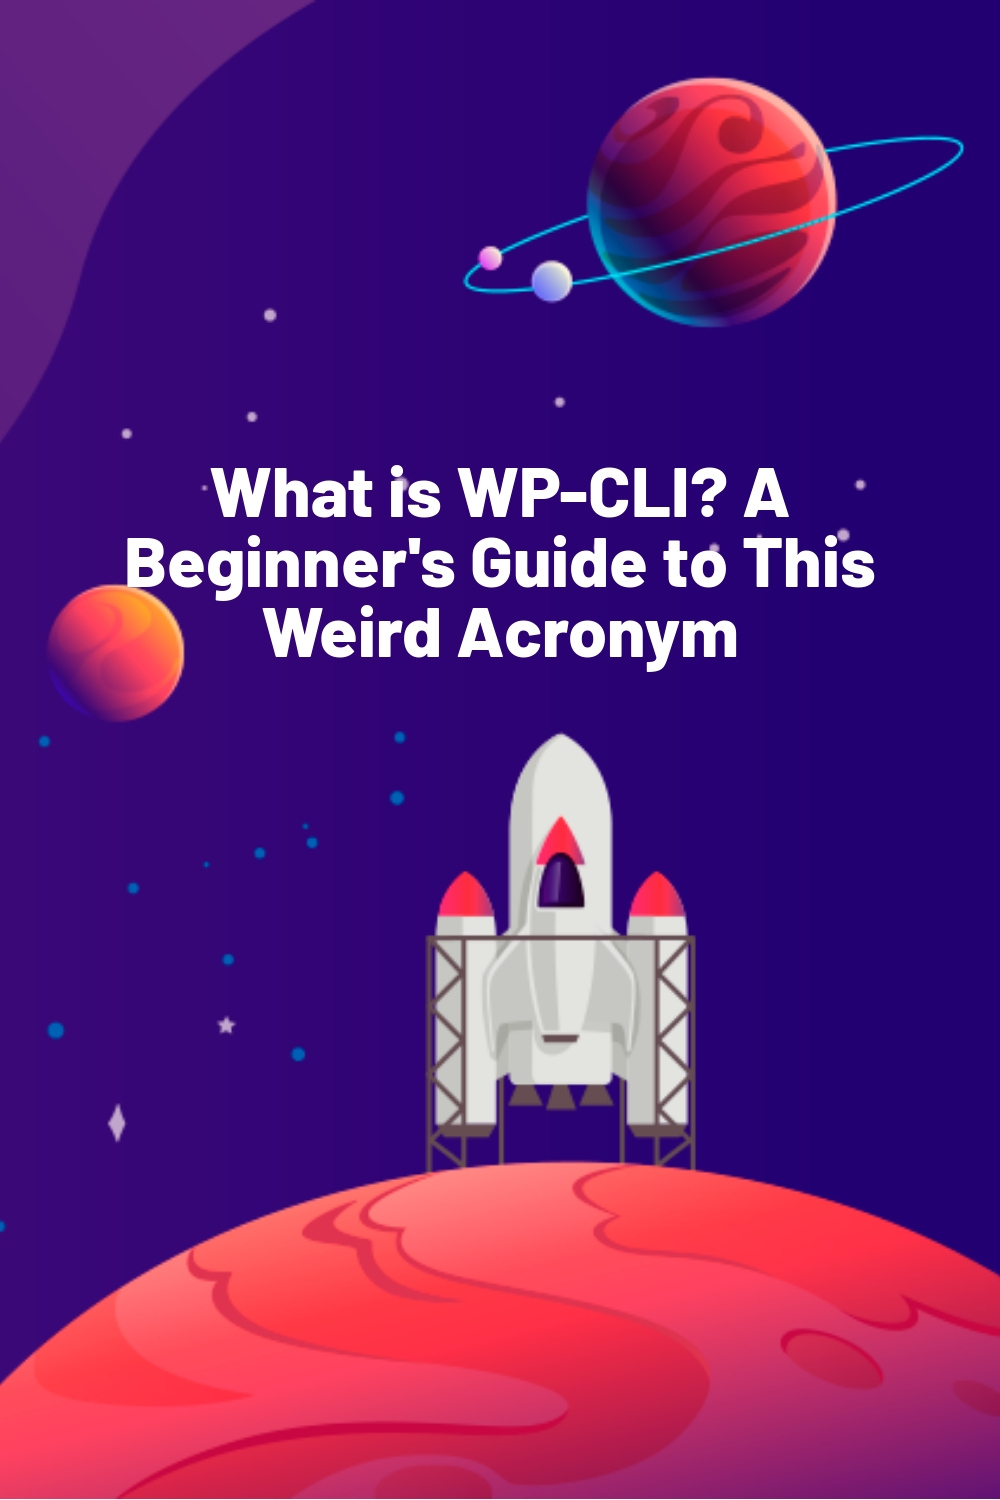 What is WP-CLI? A Beginner's Guide to This Weird Acronym